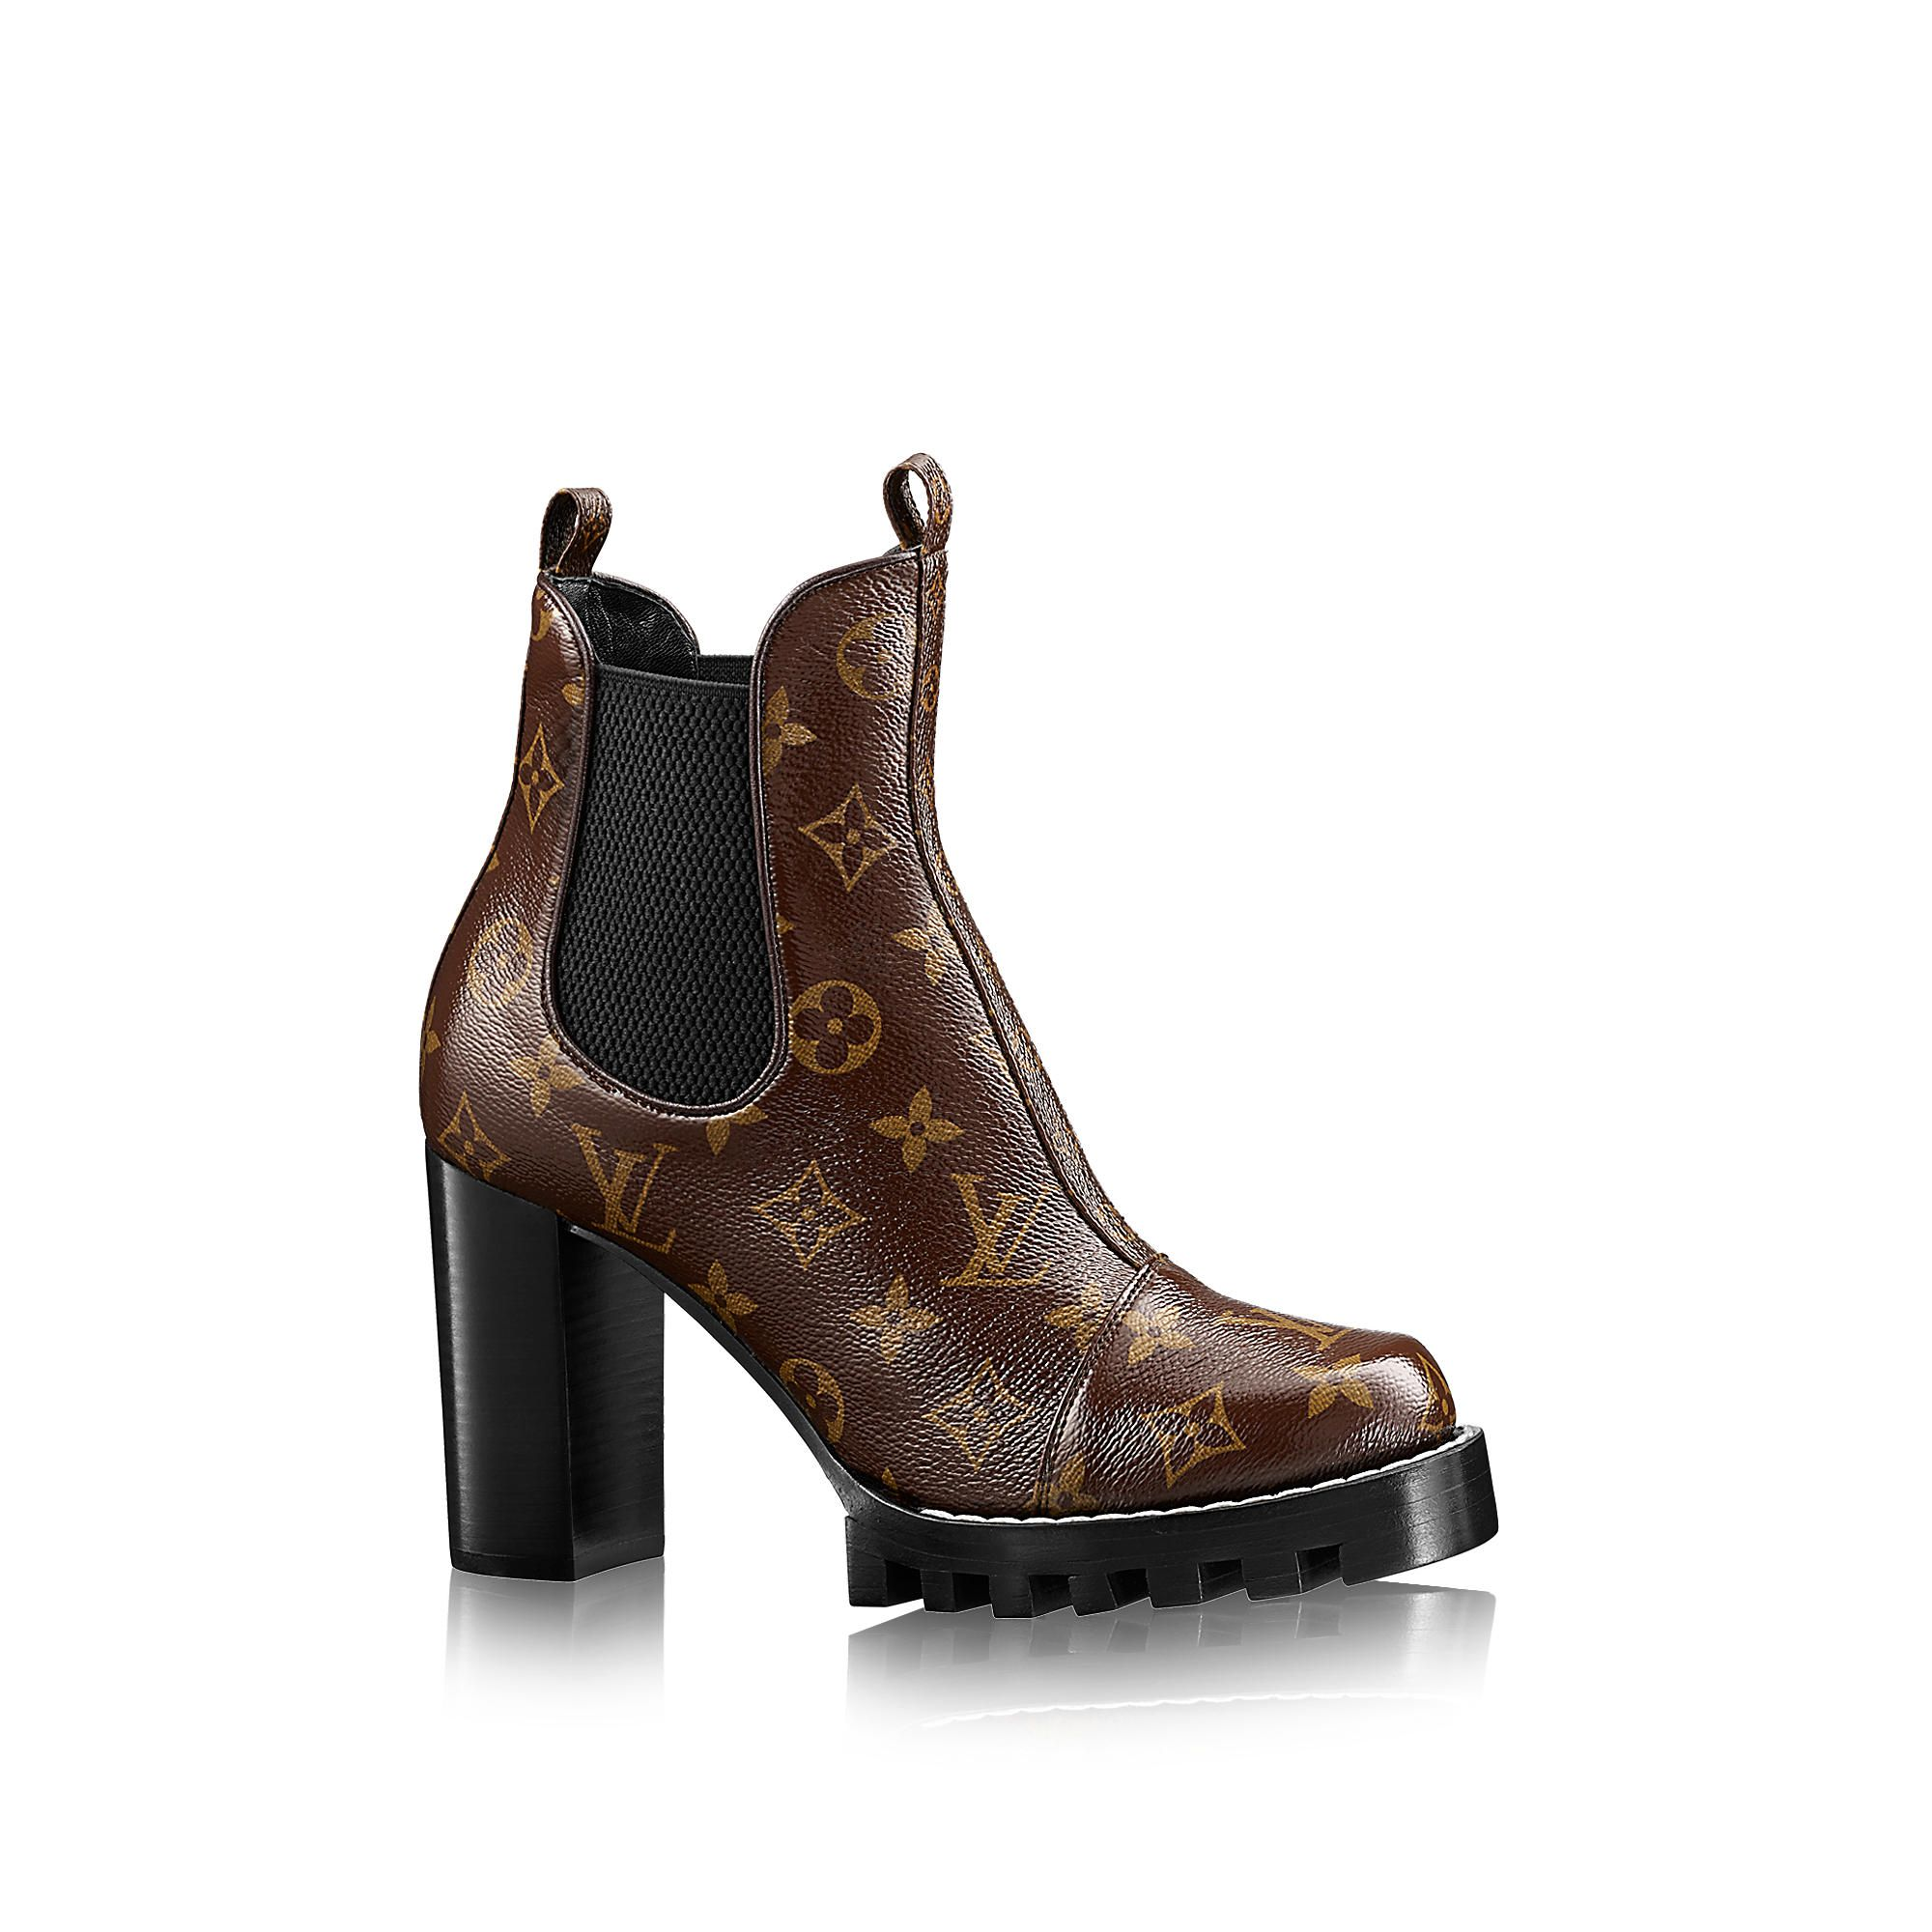 c68437726de4 LOUIS VUITTON Official USA Website - Explore Louis Vuitton's designer shoes  for women and witness the high quality materials and our amazing  craftsmanship.